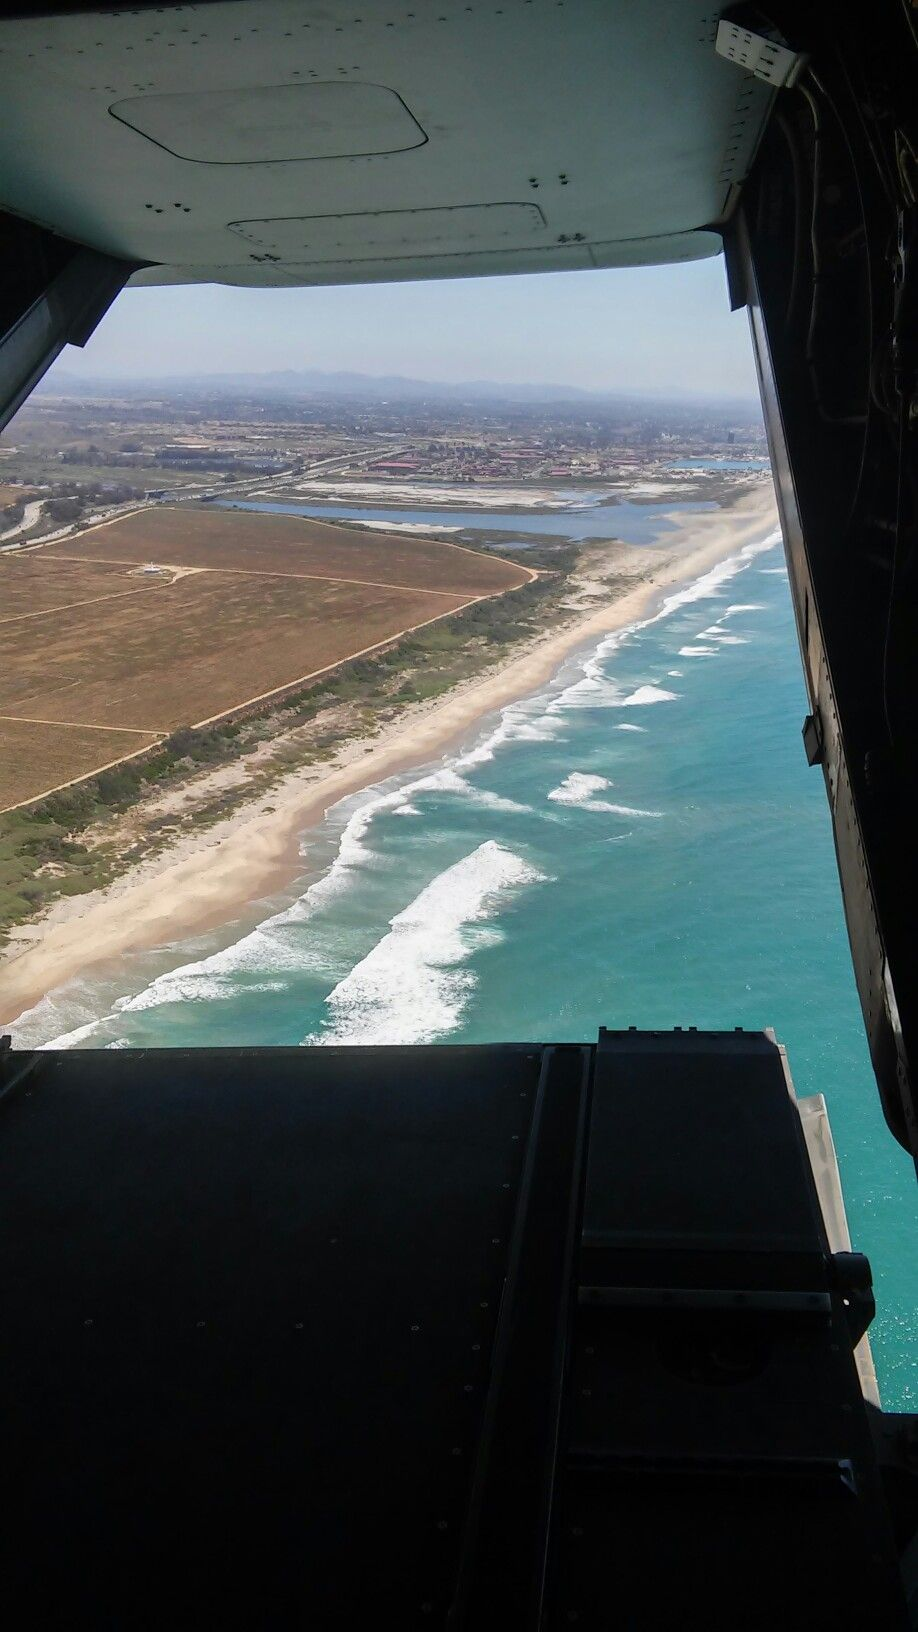 Flying in an mv22 over the ocean airplane view ocean